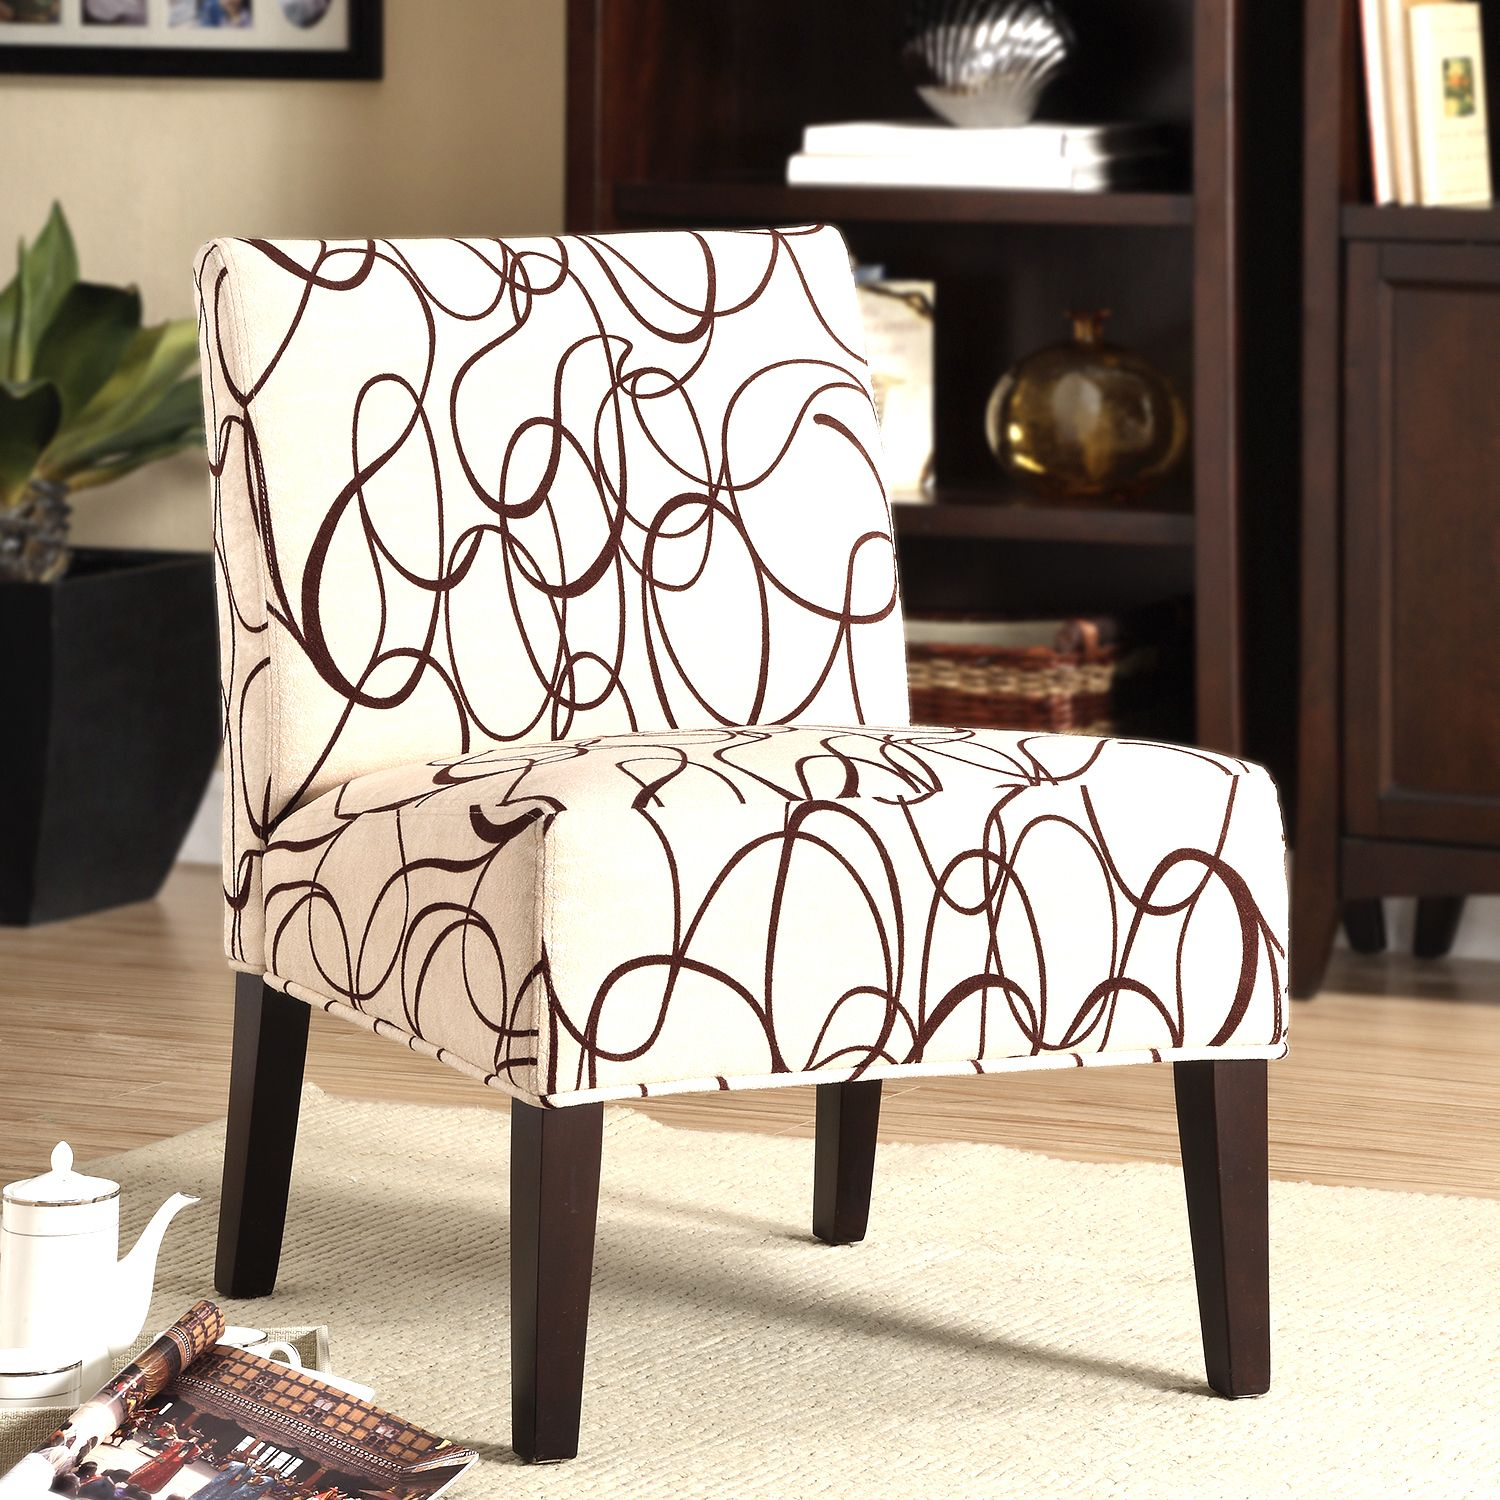 This white-and-brown lounge chair features a modern scroll motif that adds an atmosphere of sophistication to any room in your home. On top of its stylish look, its fabric material and foam filling offer maximum comfort for your relaxation enjoyment.